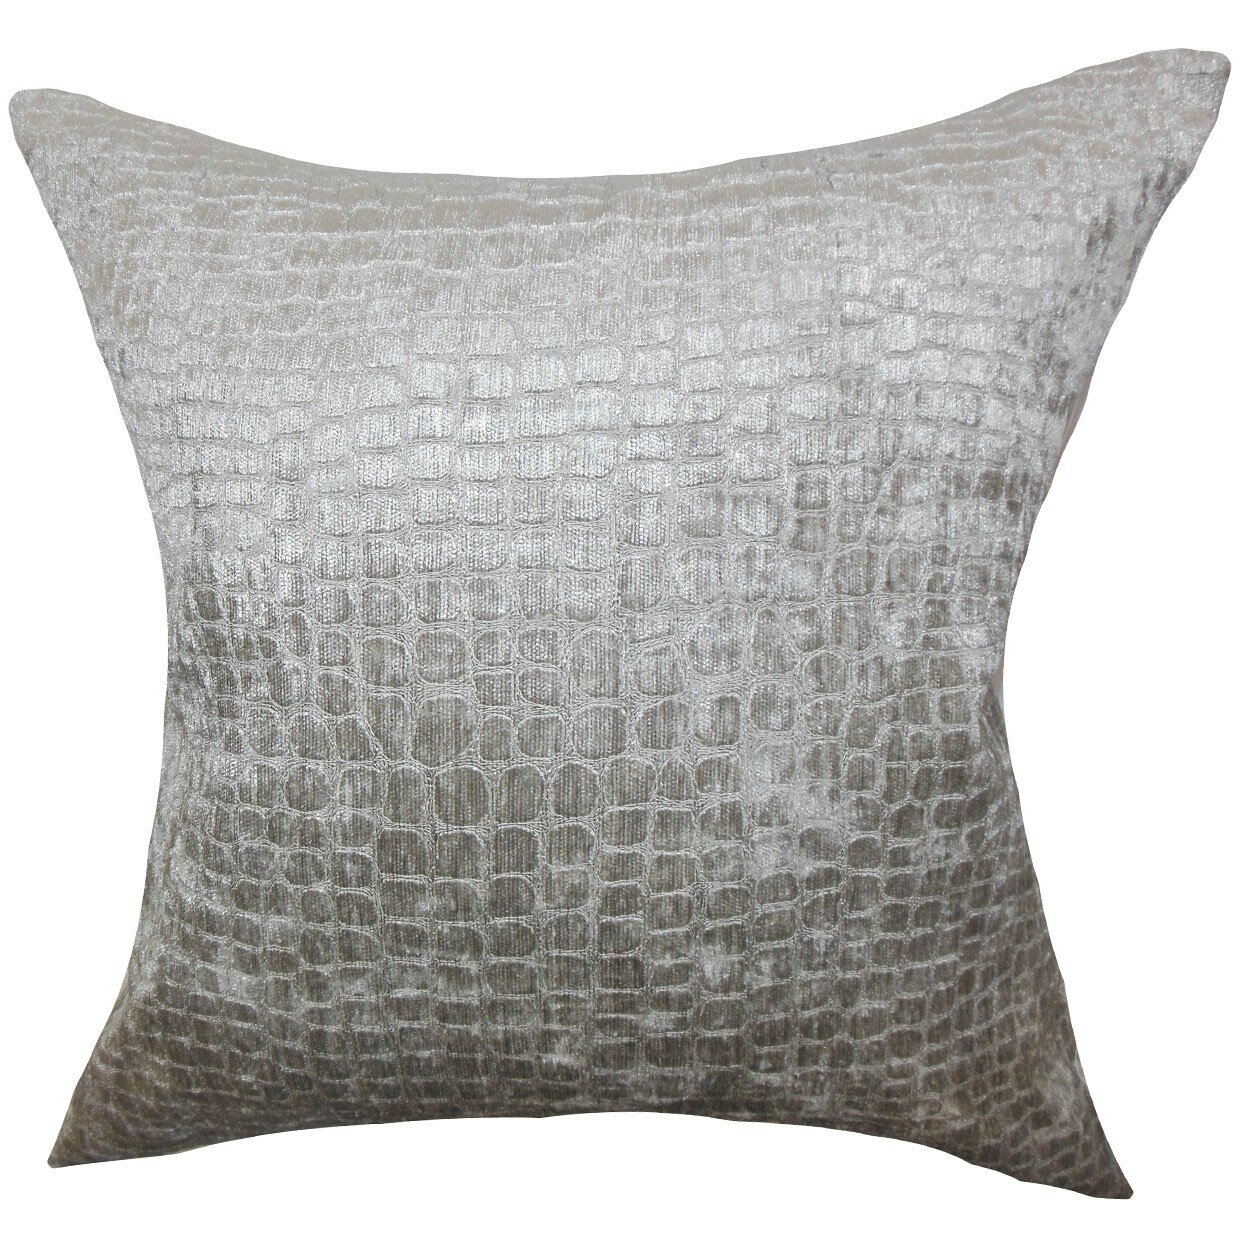 The Pillow Collection Jensine Solid Throw Pillow Cover Wayfair.ca